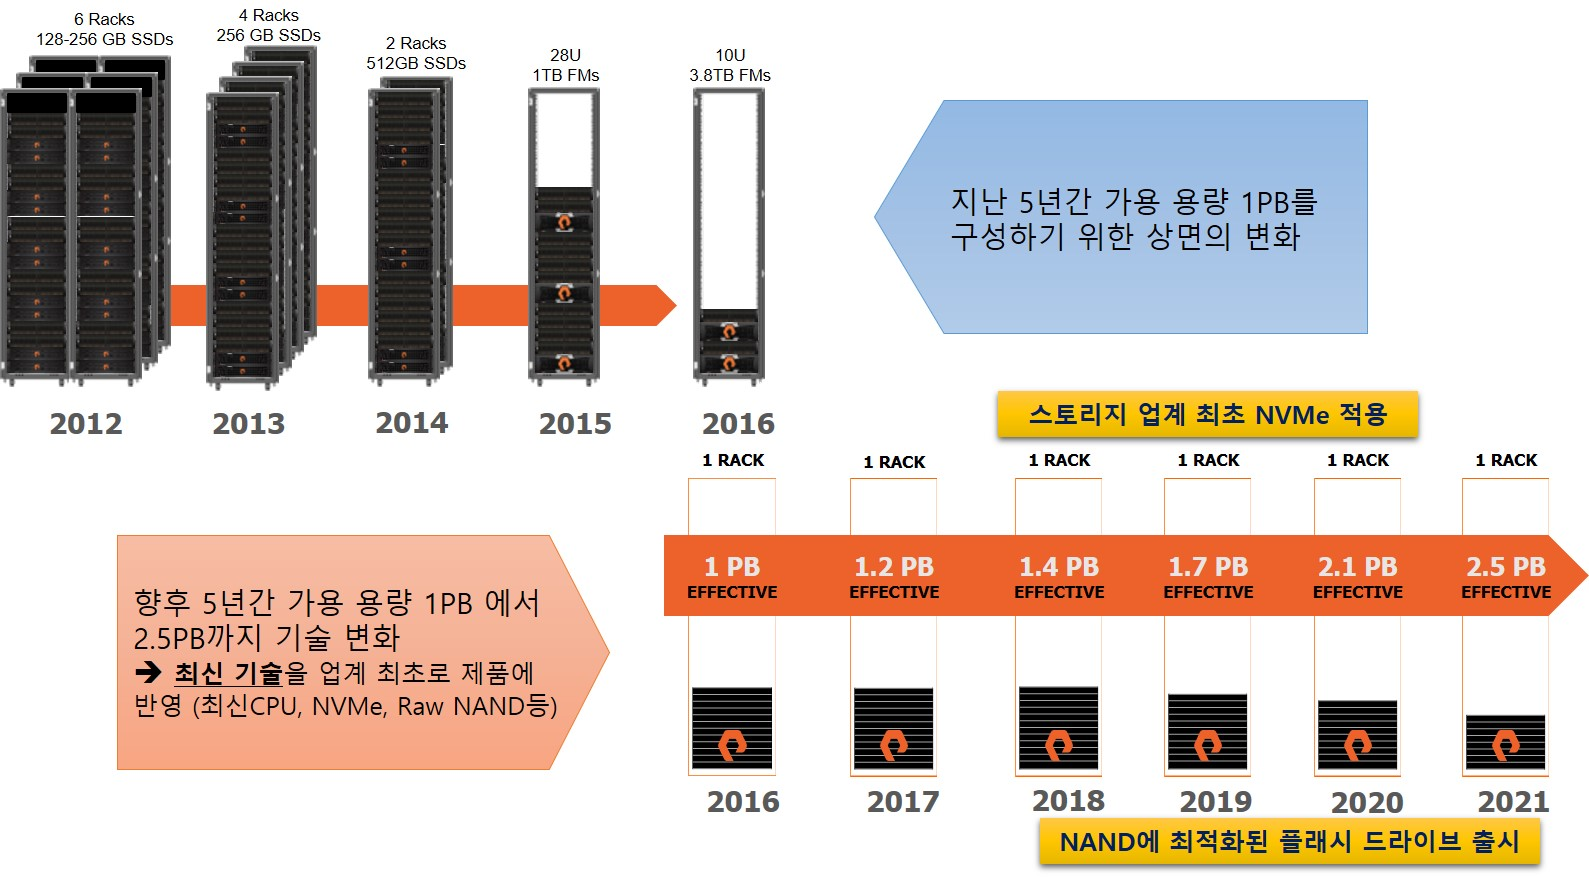 image_PURESTORAGE_12